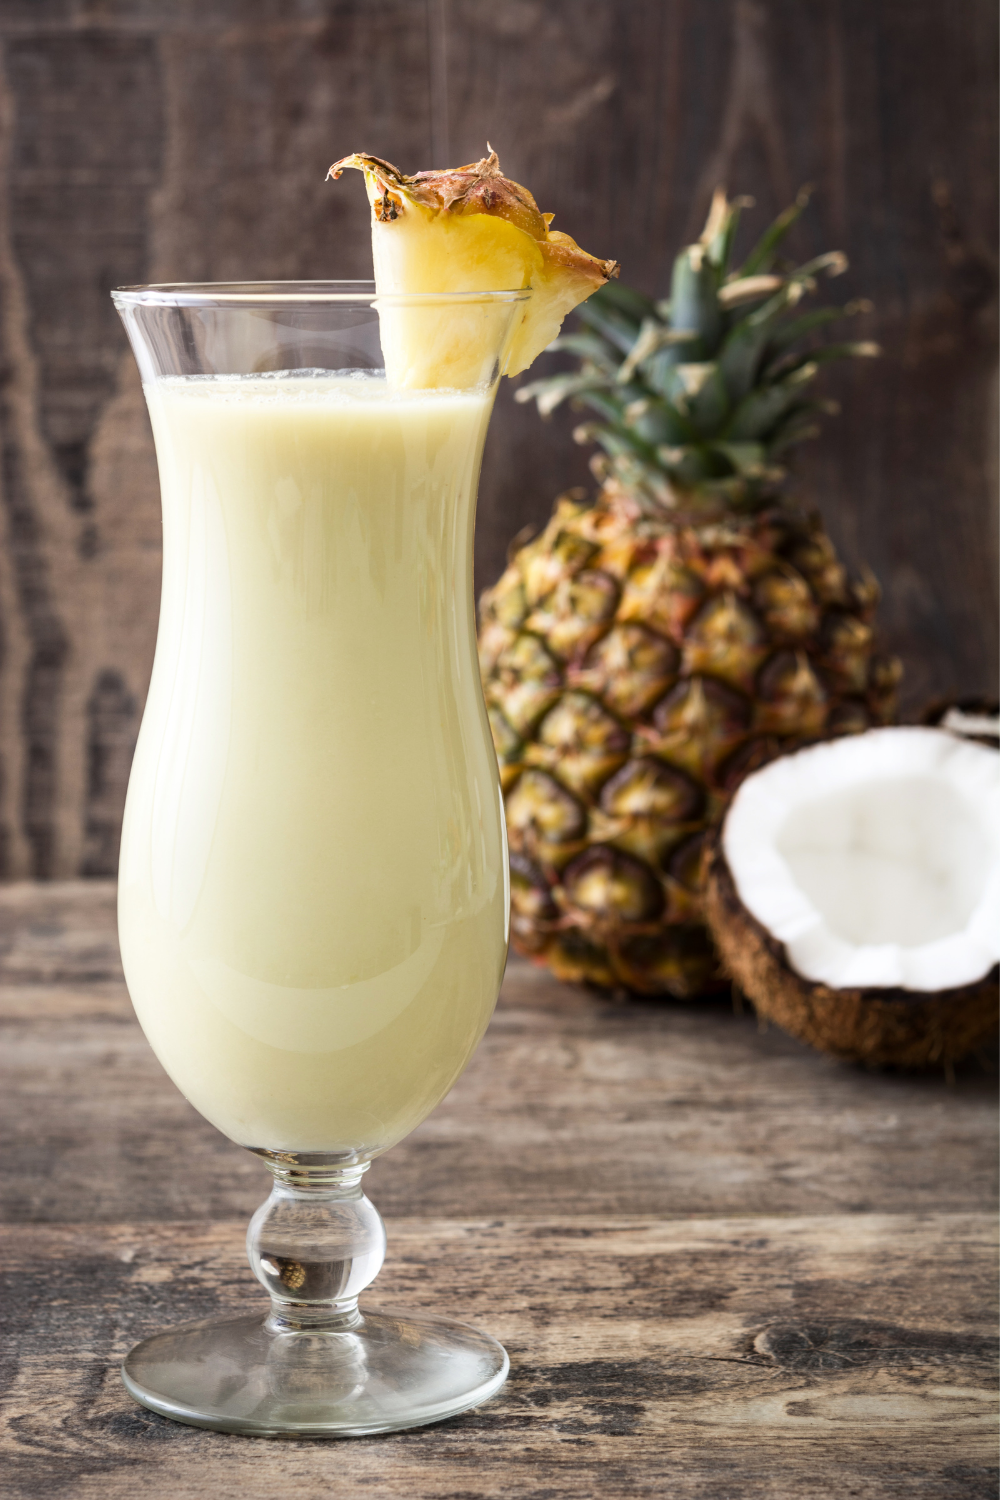 The Pina Colada Cocktail Alcohol Drink Recipes Pina Colada Cocktail Recipe Pina Colada